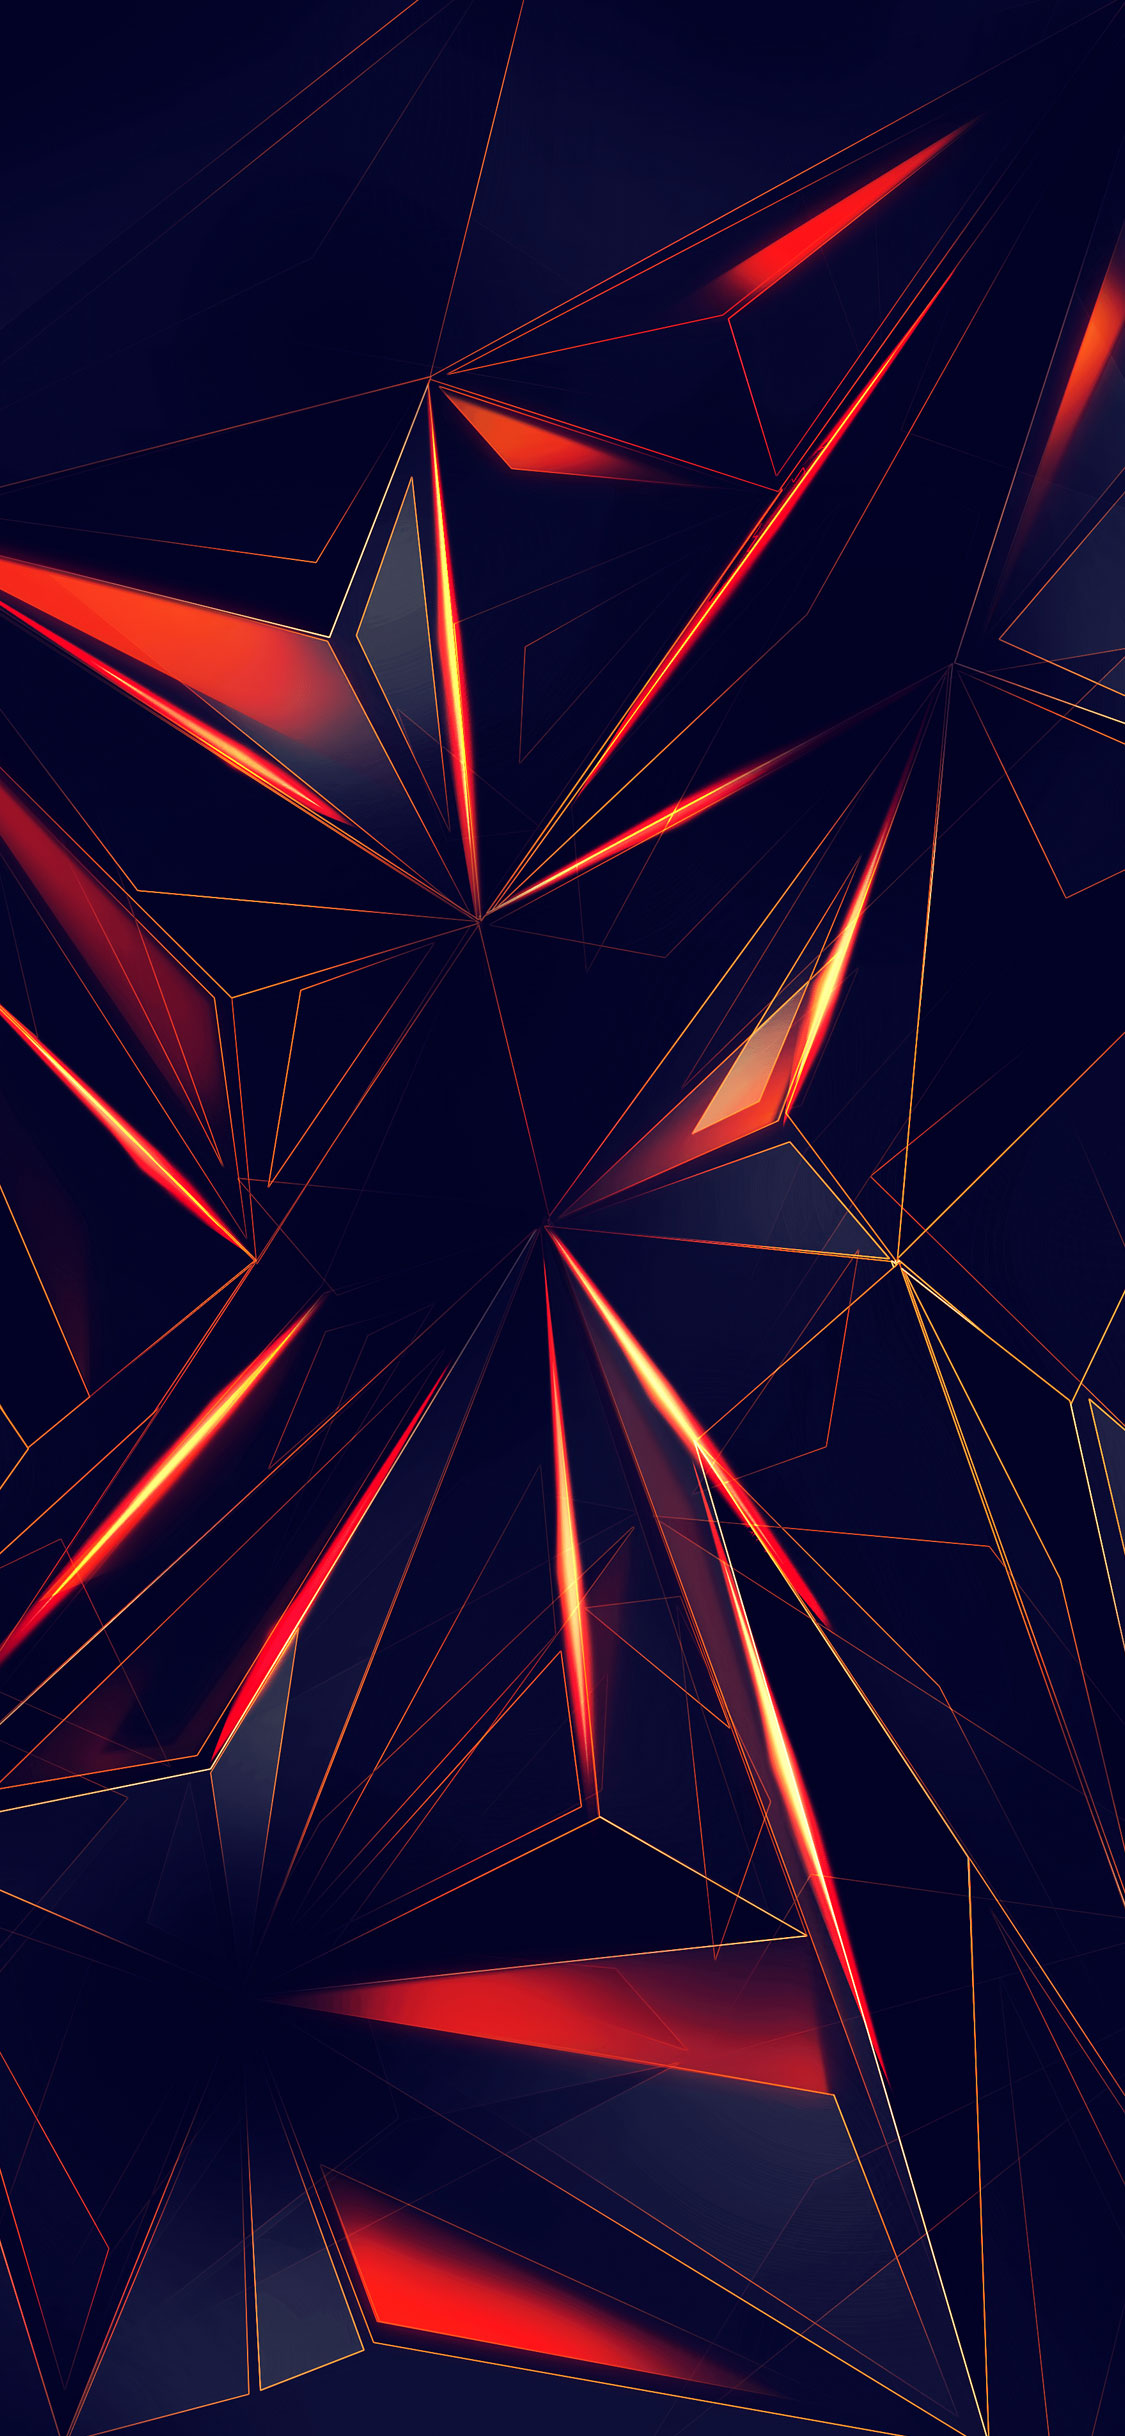 60 Latest Best IPhone X Wallpapers & Backgrounds For Everyone